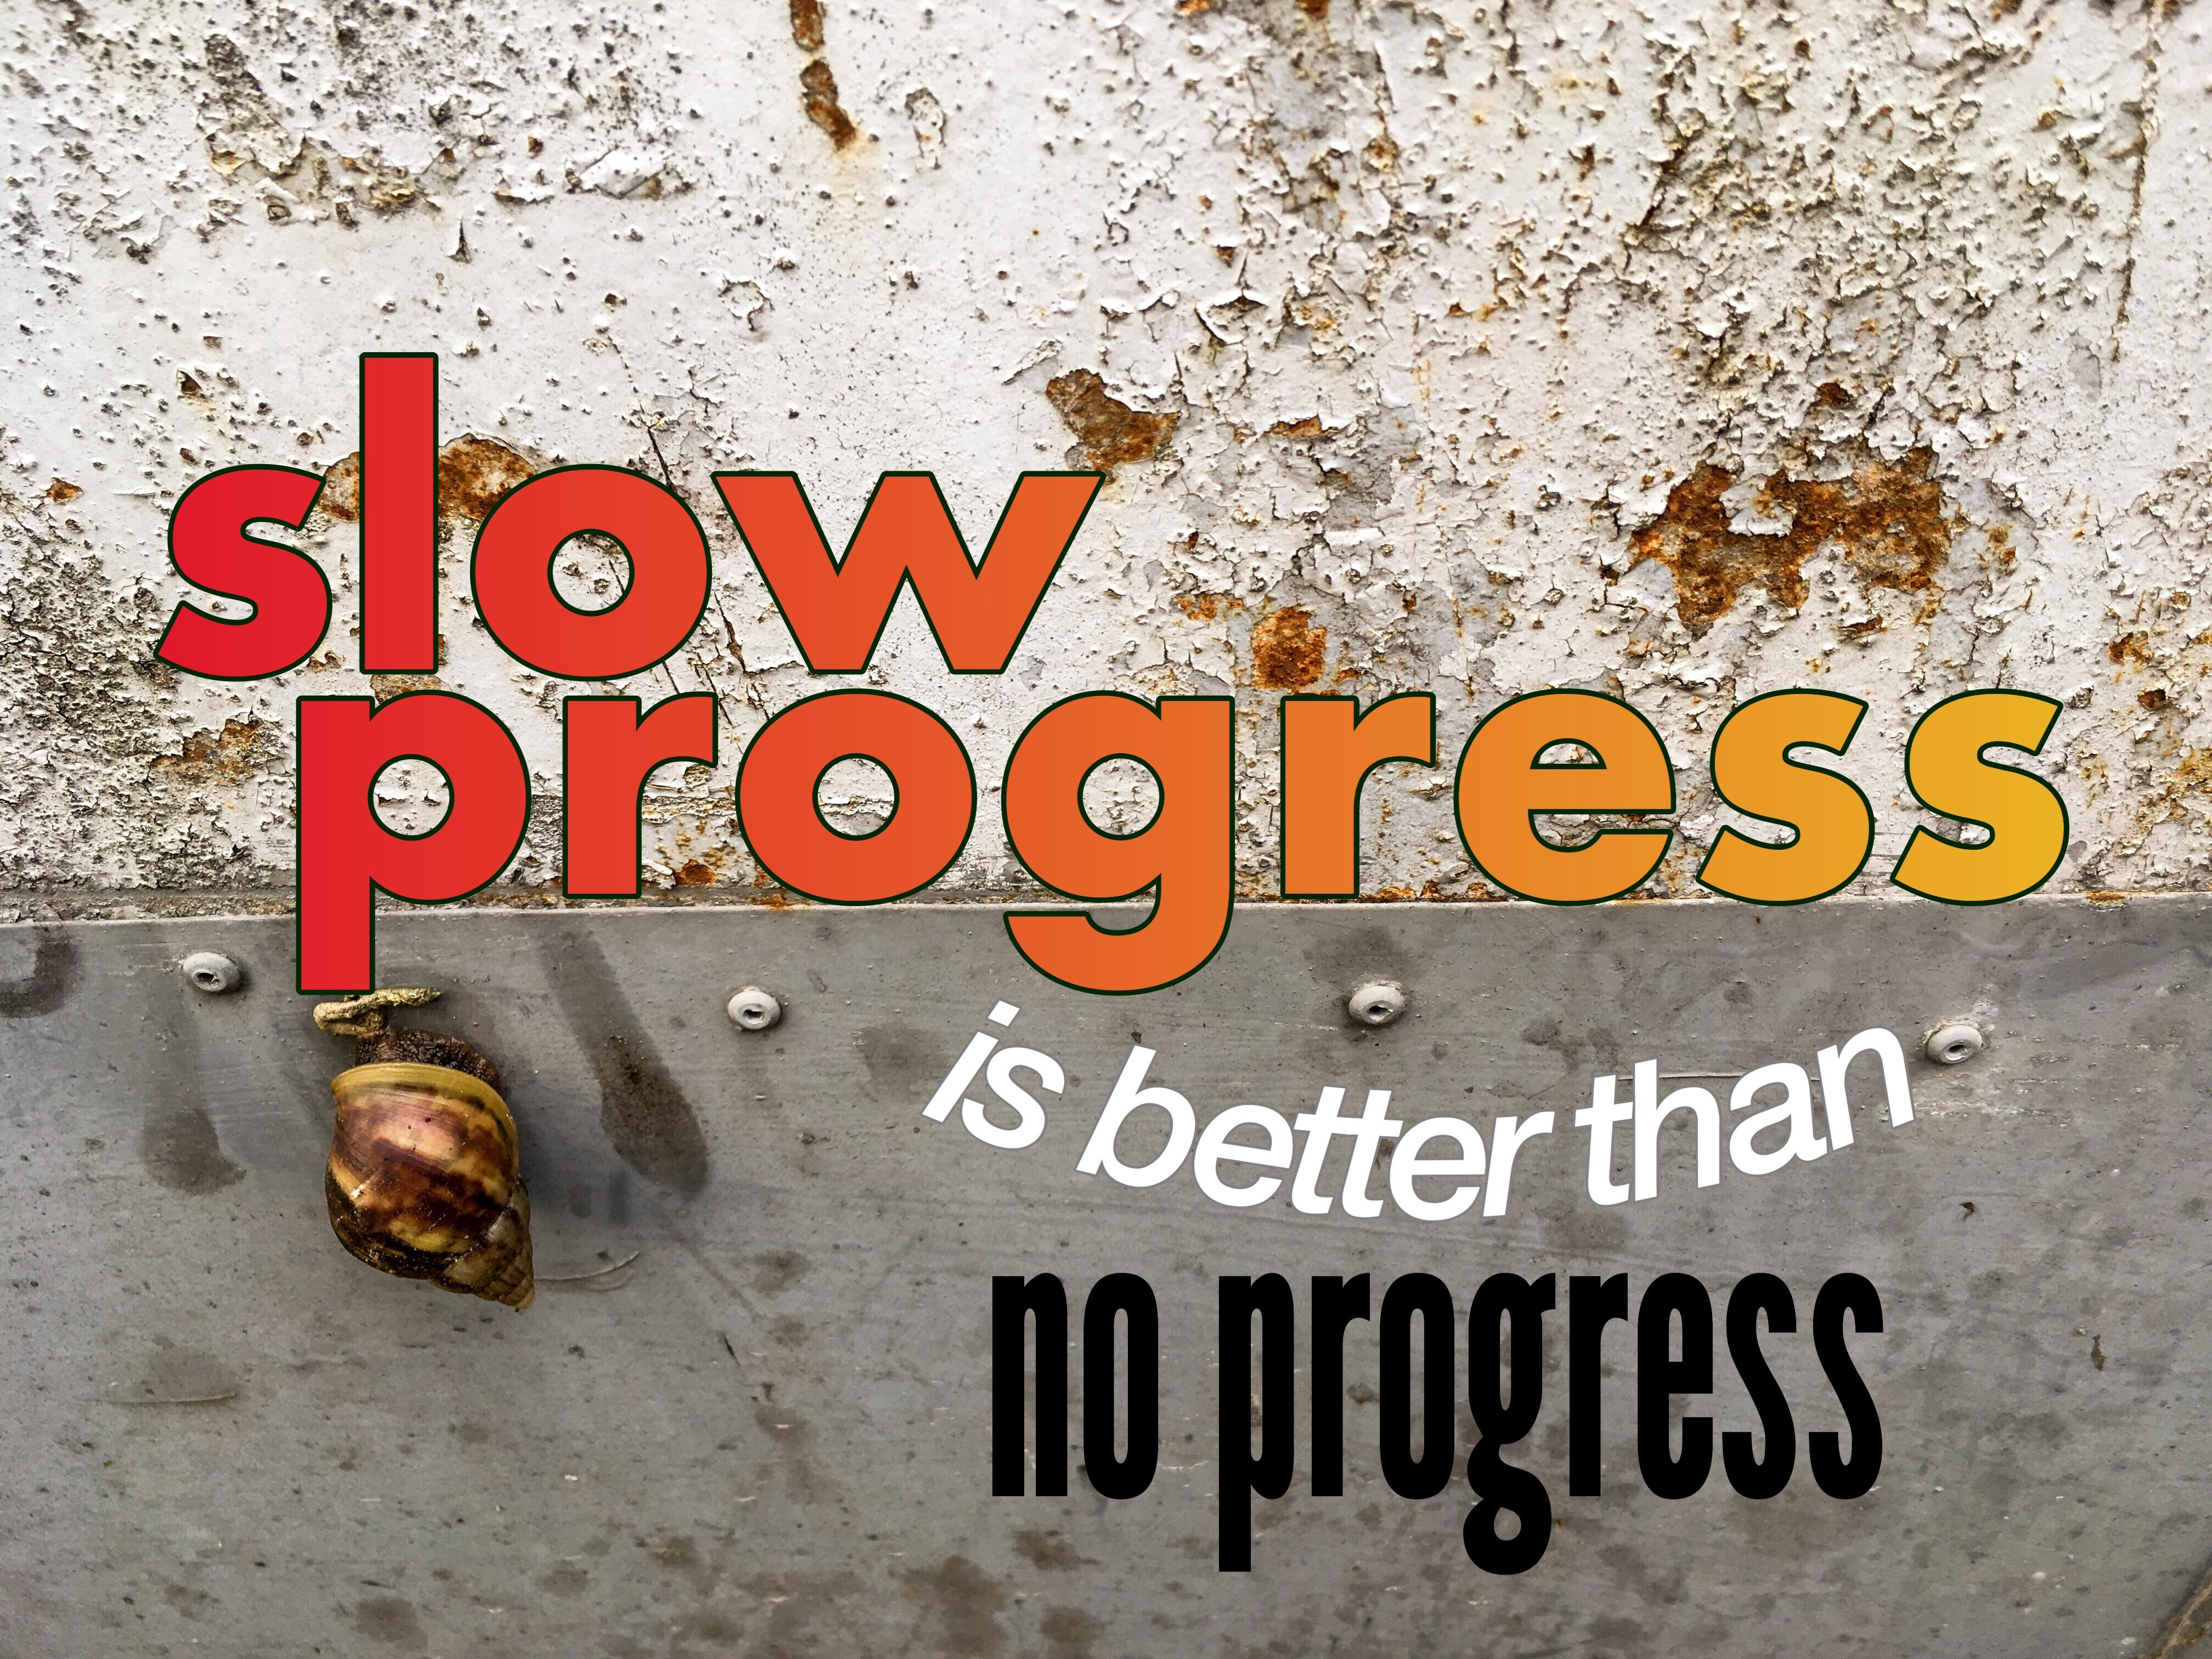 """Slow progress is better than no progress."" —Jami Gold [4032×3024] [OC]"